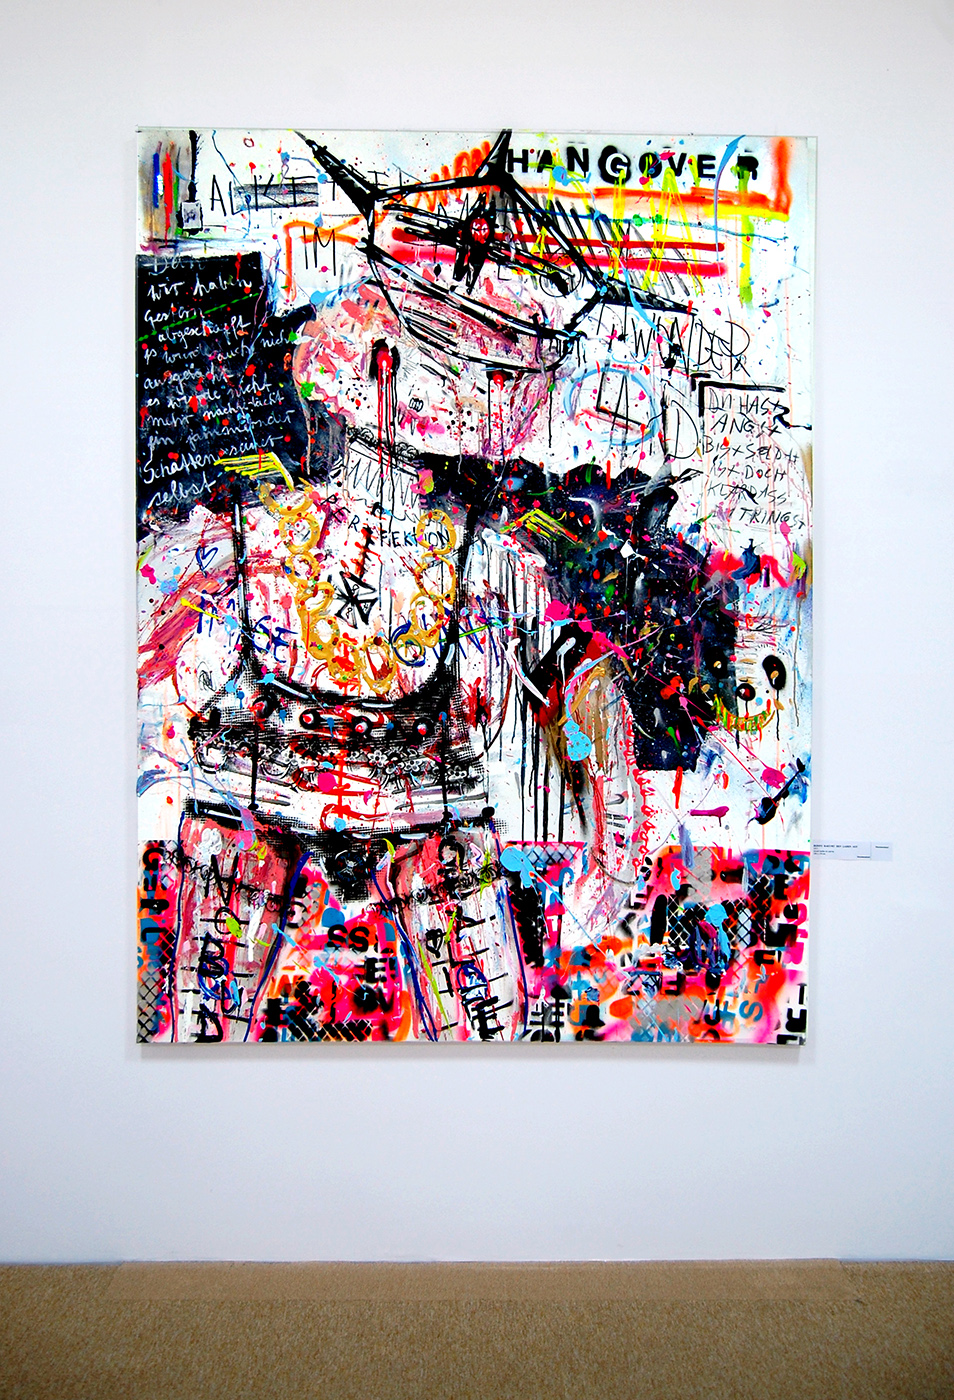 RONNY RAEUMT DEN LADEN AUF, 2013, mixed media on canvas, 200x150cm